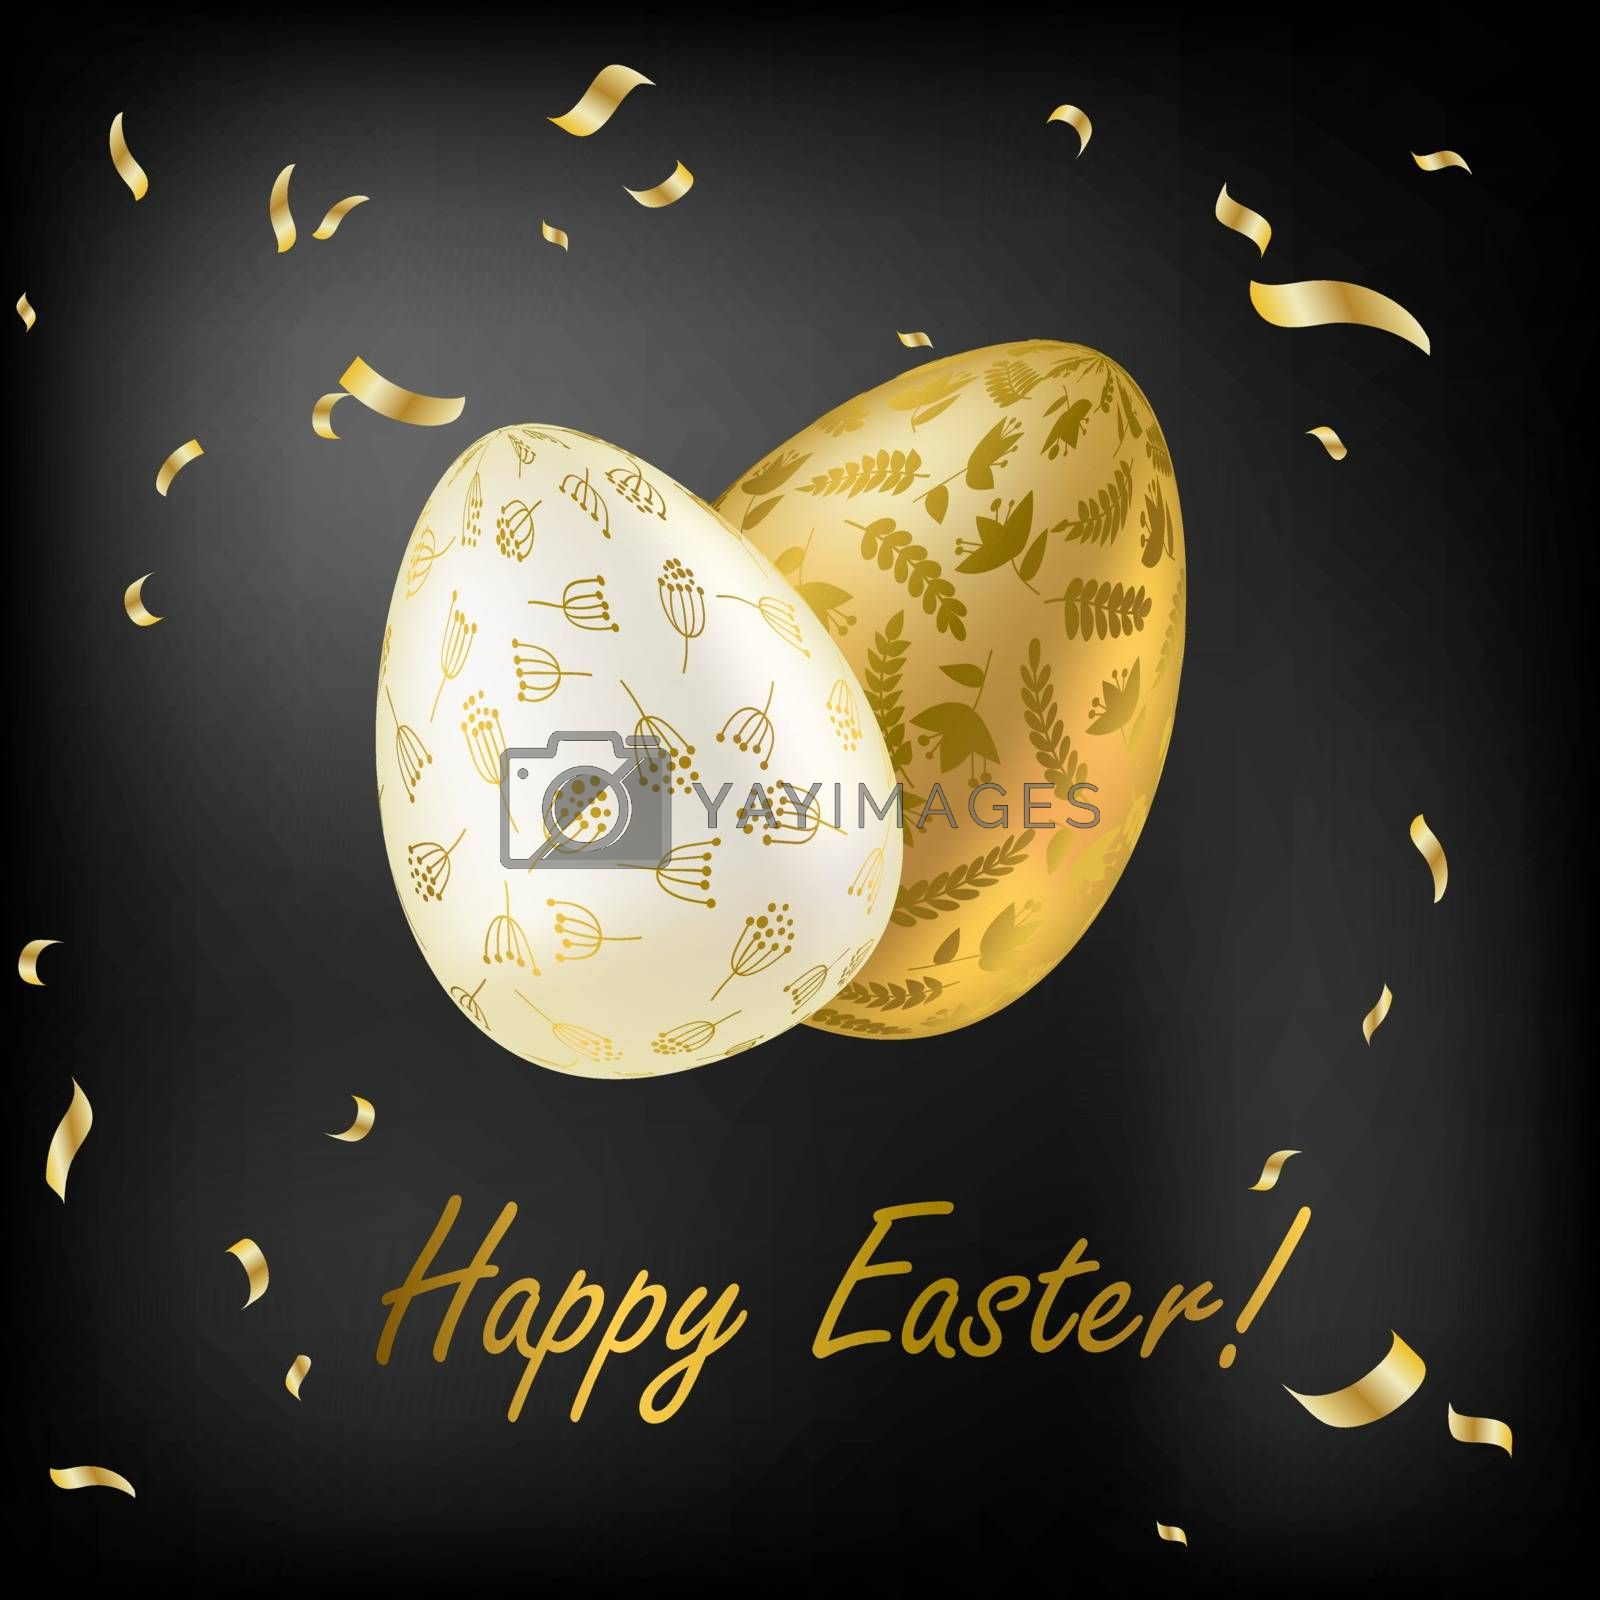 Easter egg. Greeting card with Golden eggs. Religious holiday vector illustration for poster, flyer. Decorate Golden eggs with plant ornaments on a dark background. Happy Easter